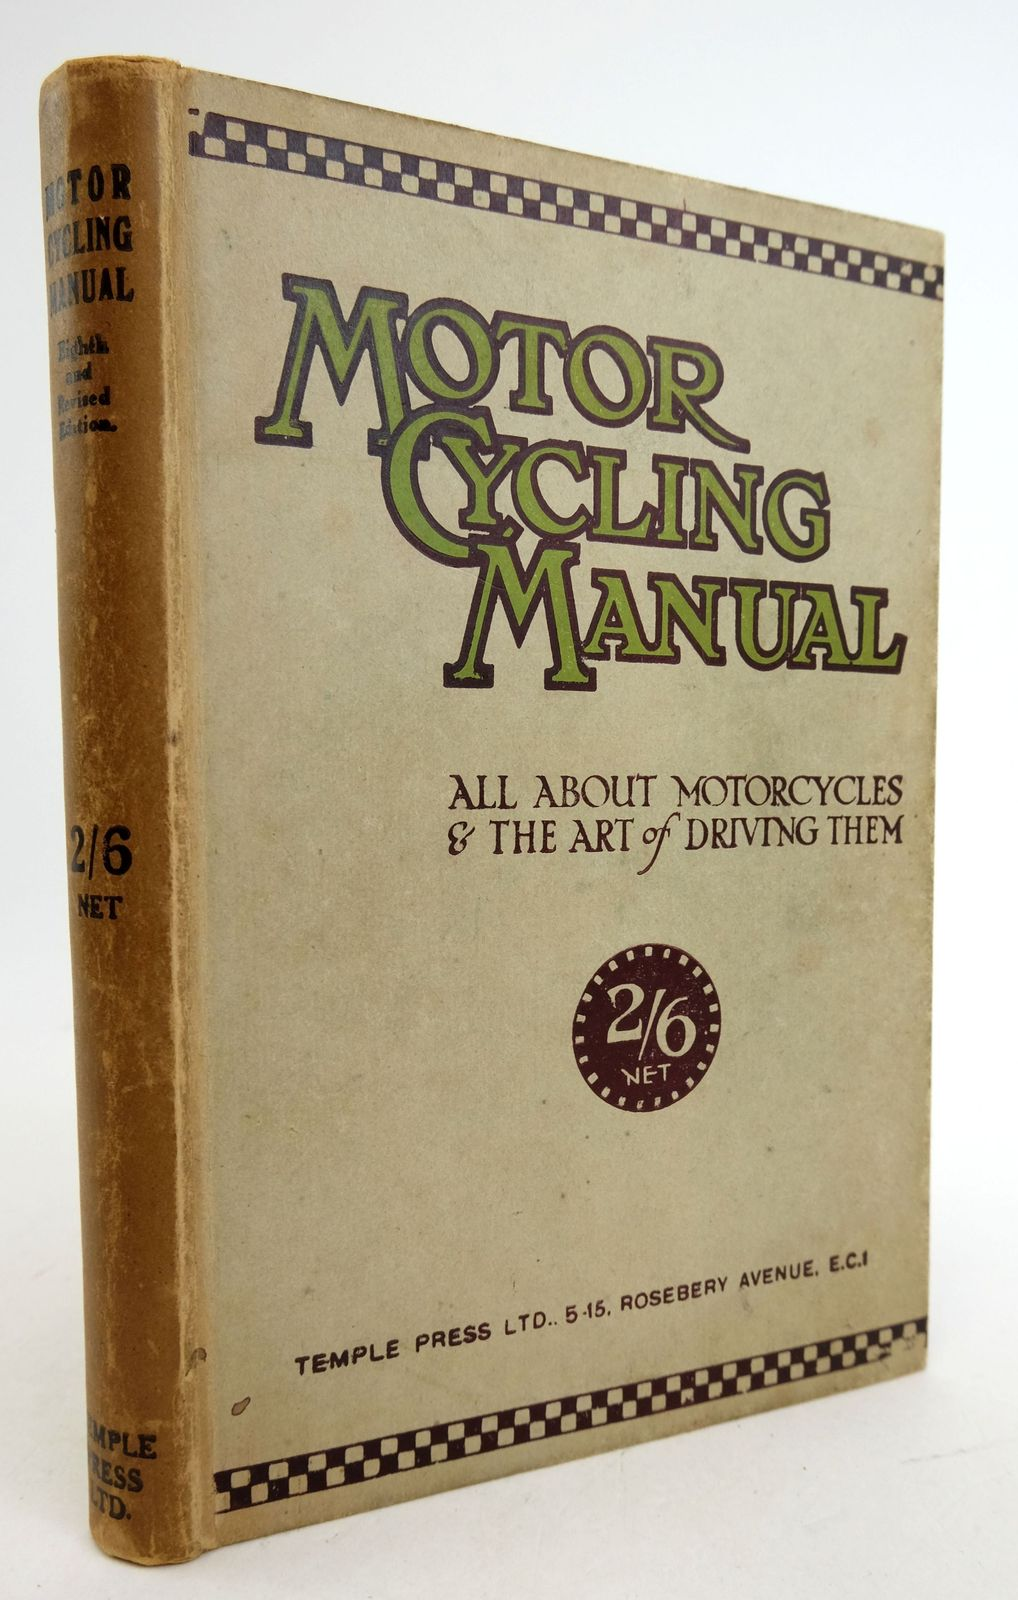 Photo of MOTOR CYCLING MANUAL: ALL ABOUT MOTORCYCLES AND THE ART OF DRIVING THEM published by Temple Press Limited (STOCK CODE: 1819442)  for sale by Stella & Rose's Books